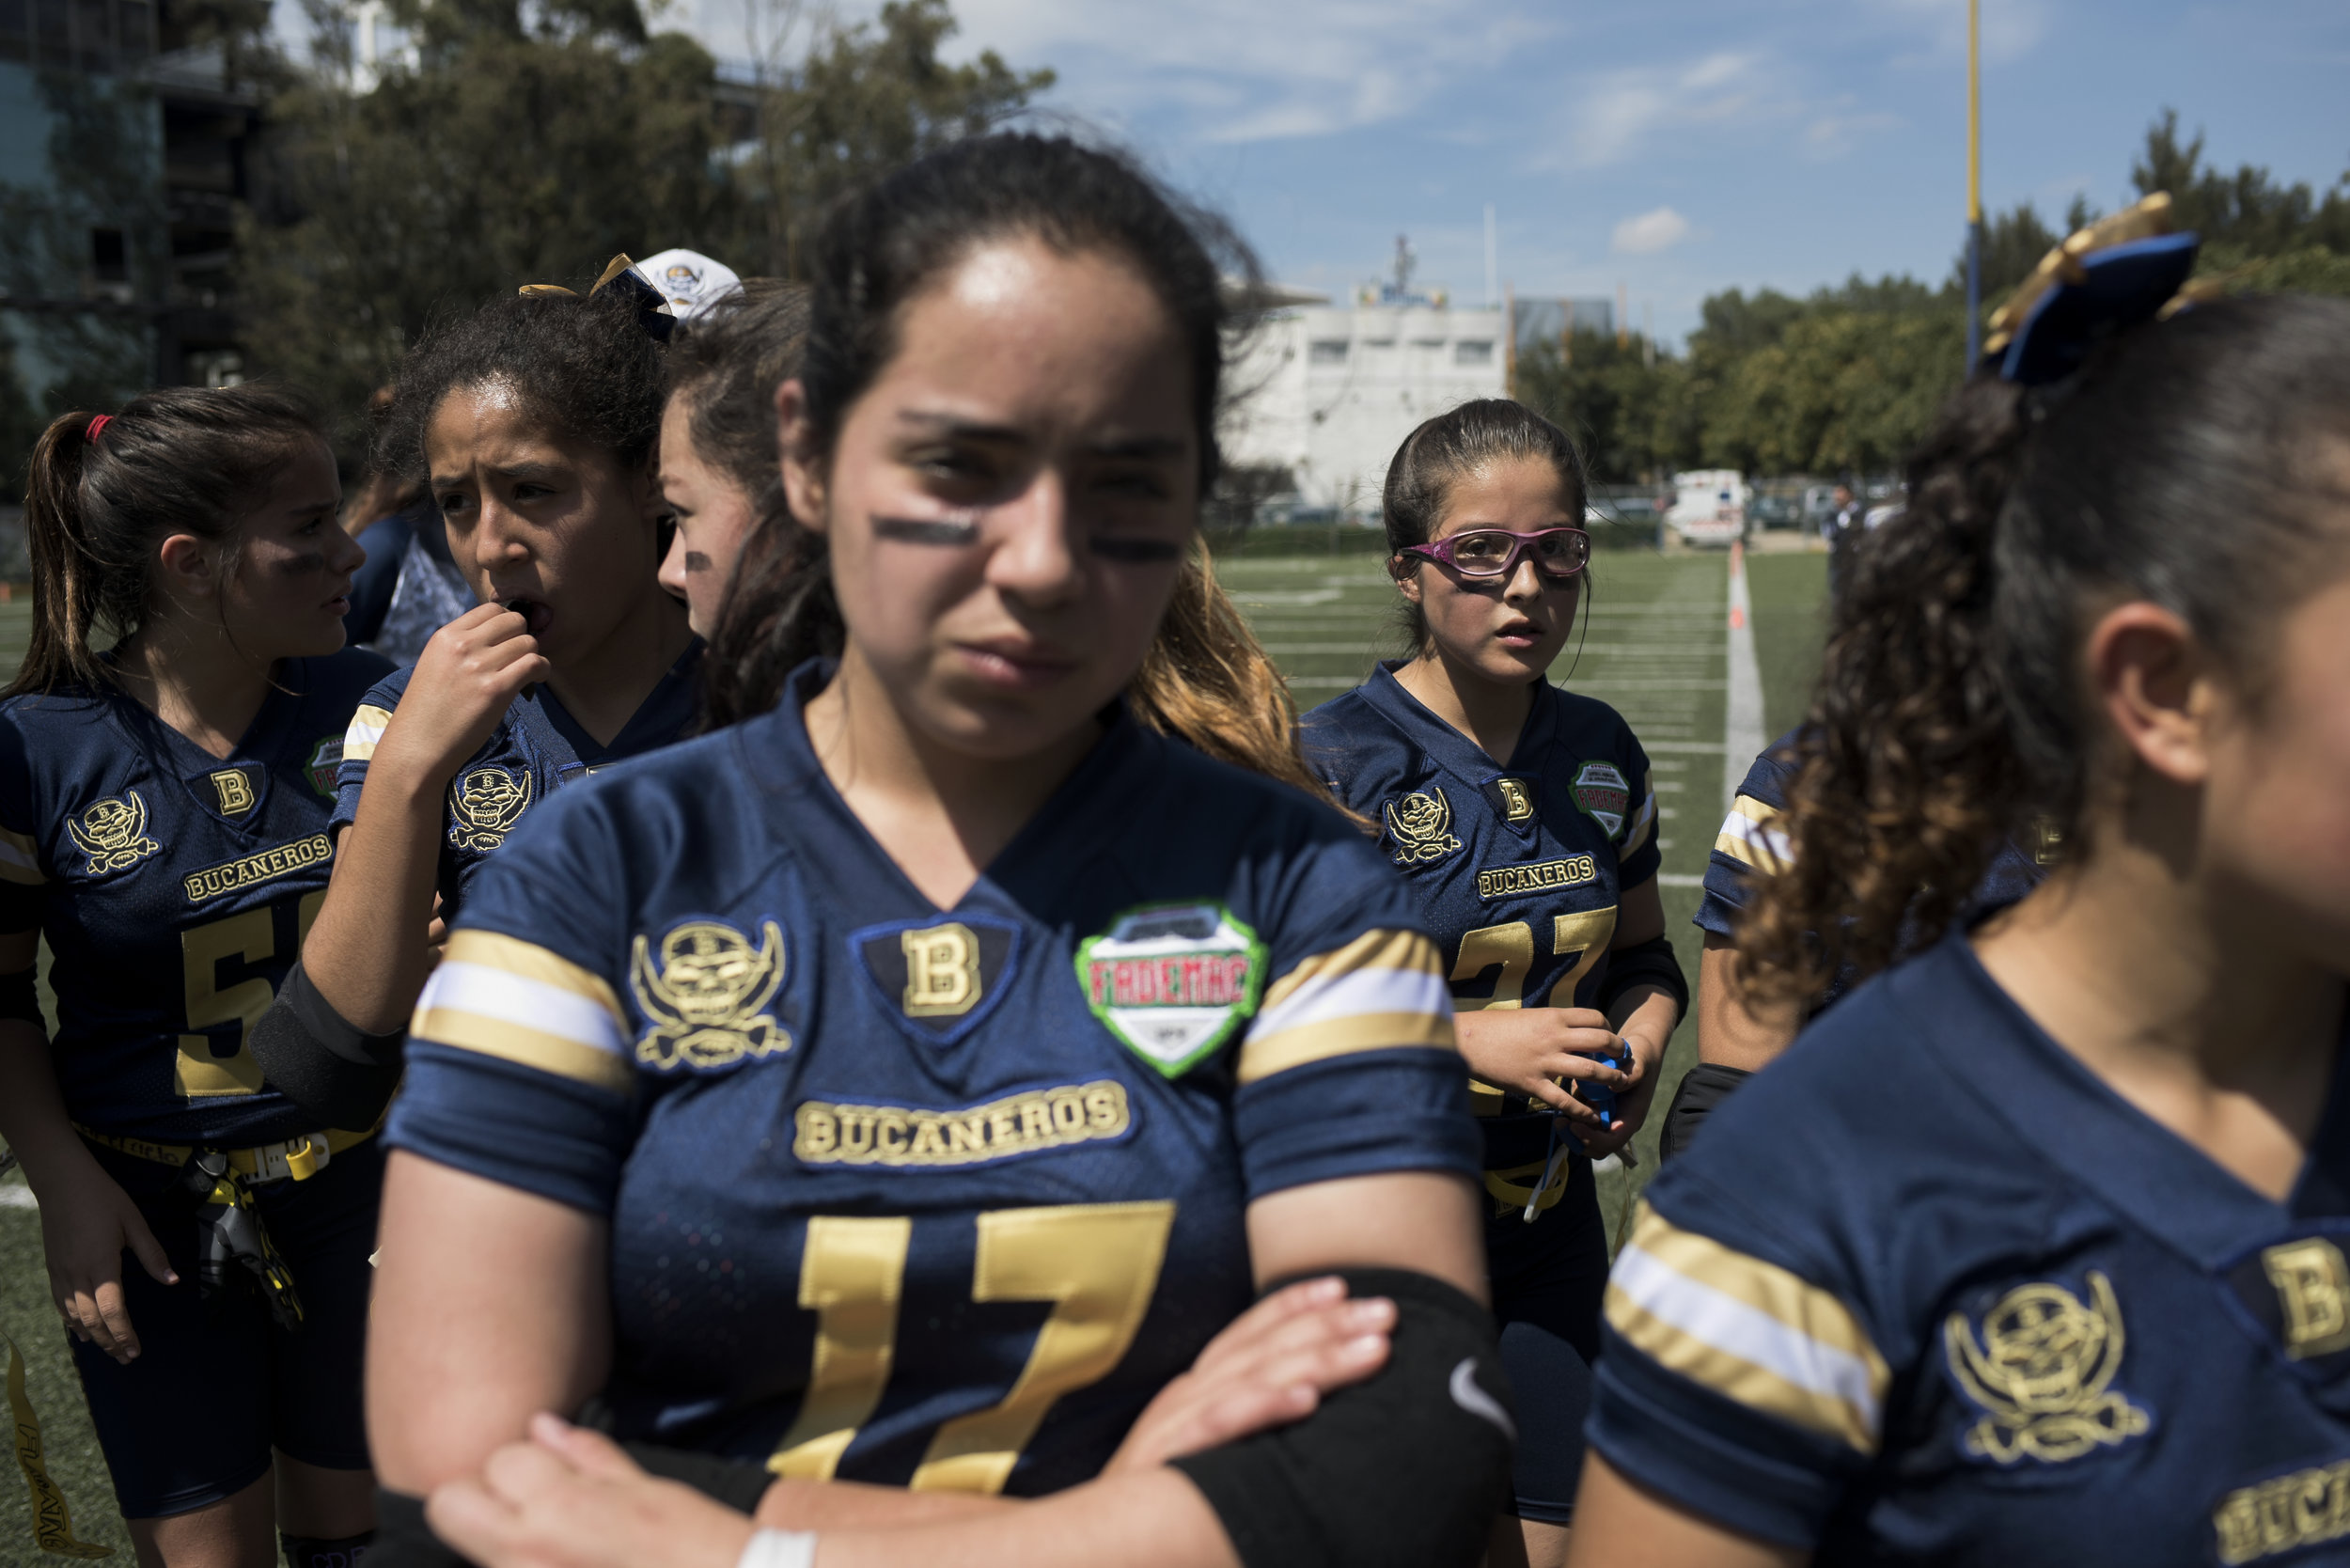 MEXICO CITY, MEXICO - OCTOBER 23: Isabella Villalobos, center, was to the locker room during halftime of their flag football game on October 23, 2016 in Mexico City. This is Isabella's second game playing flag football.